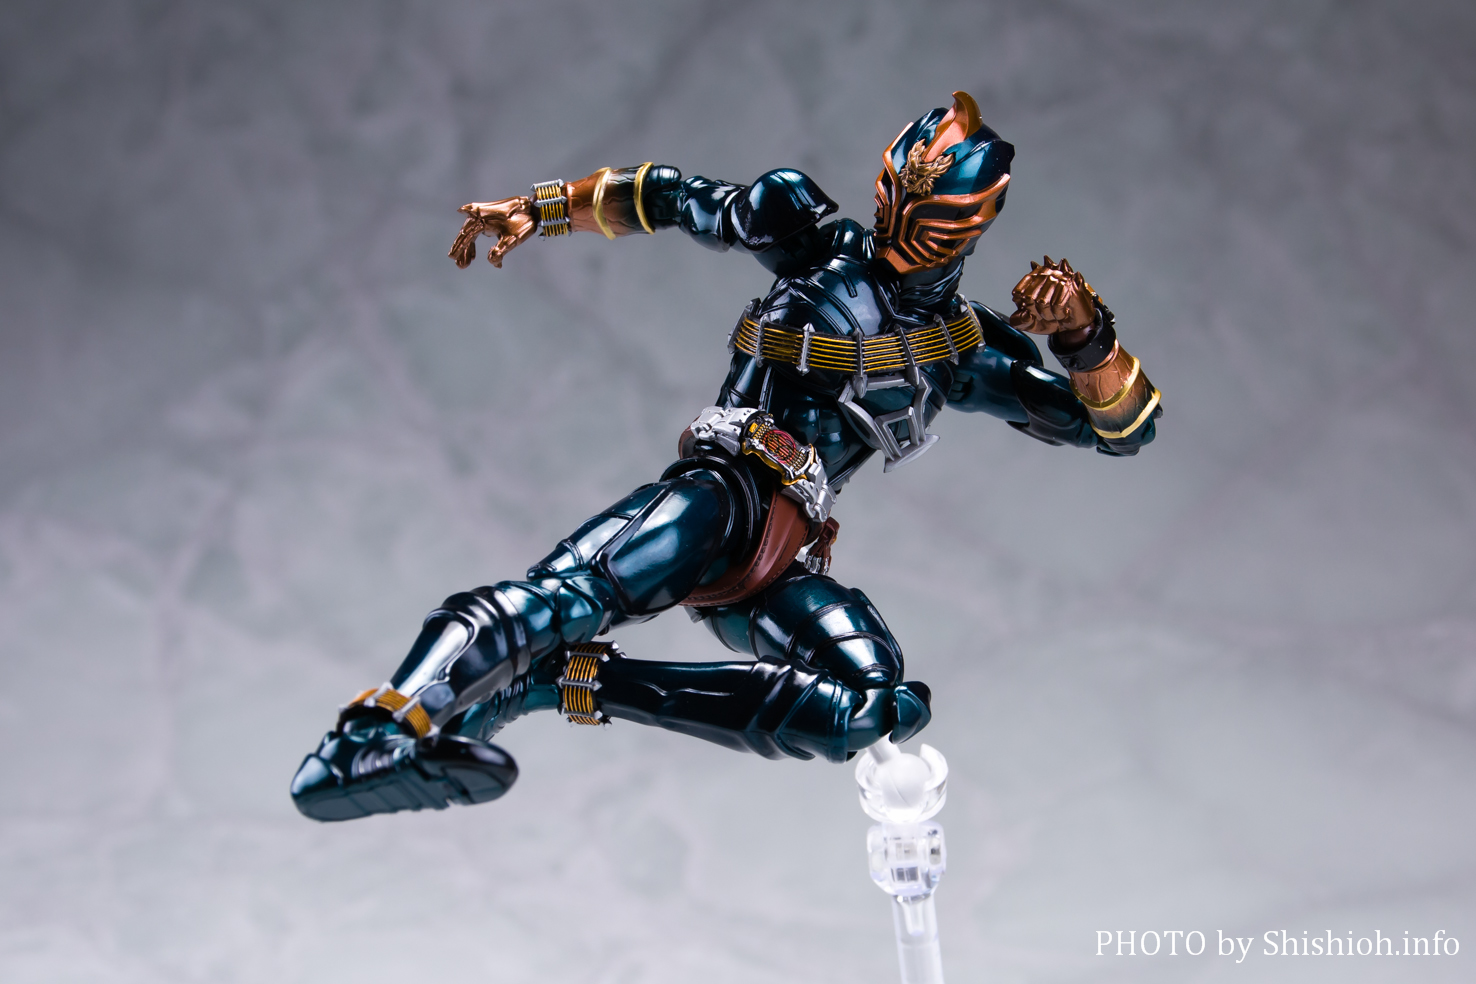 S.H.Figuarts(真骨彫製法)仮面ライダー斬鬼